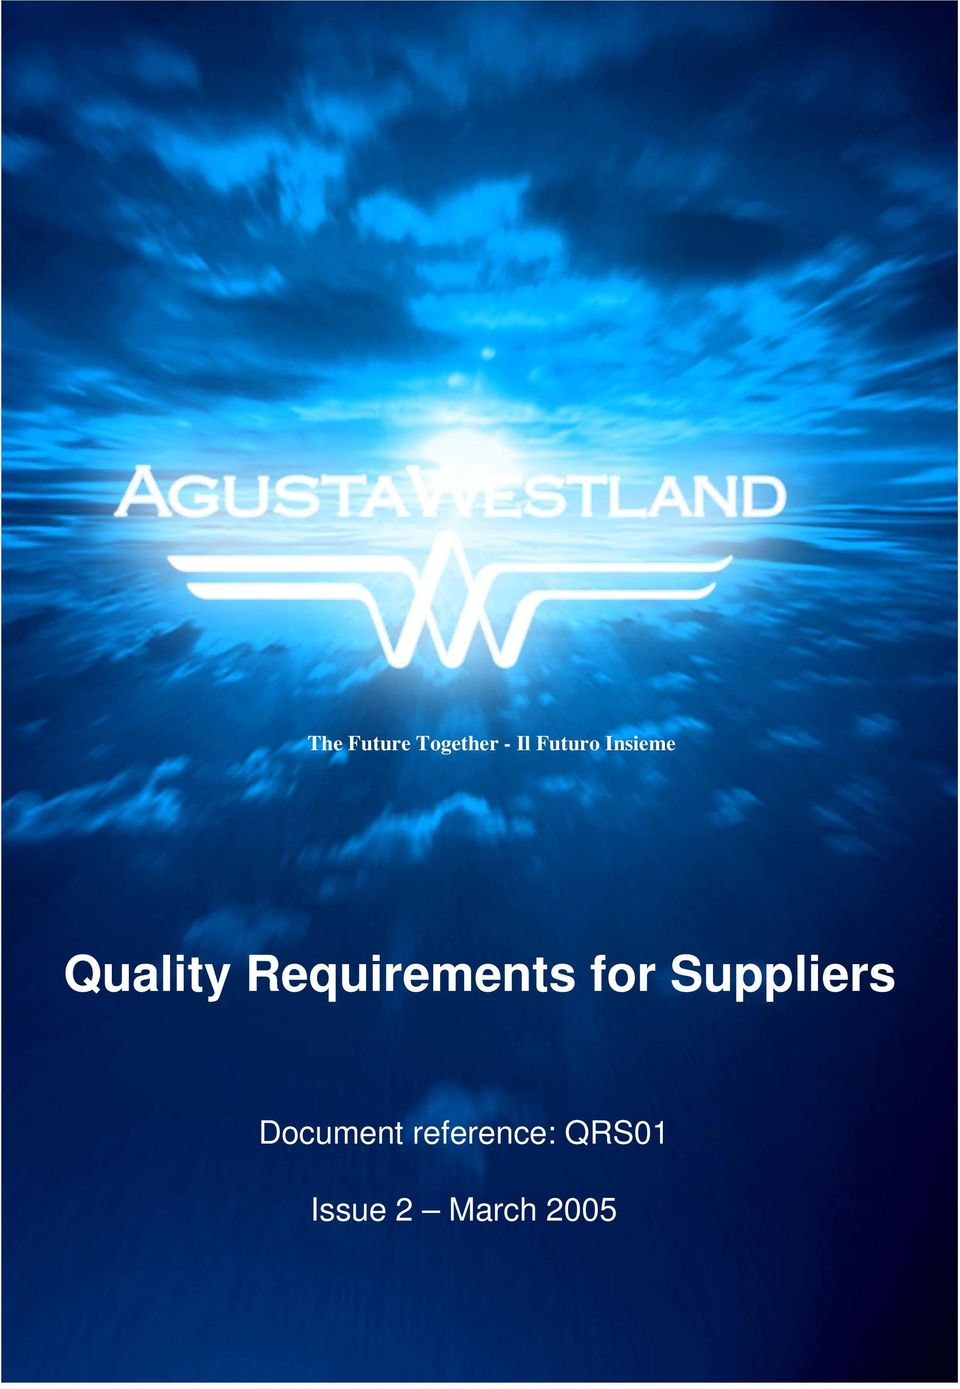 Requirements for Suppliers